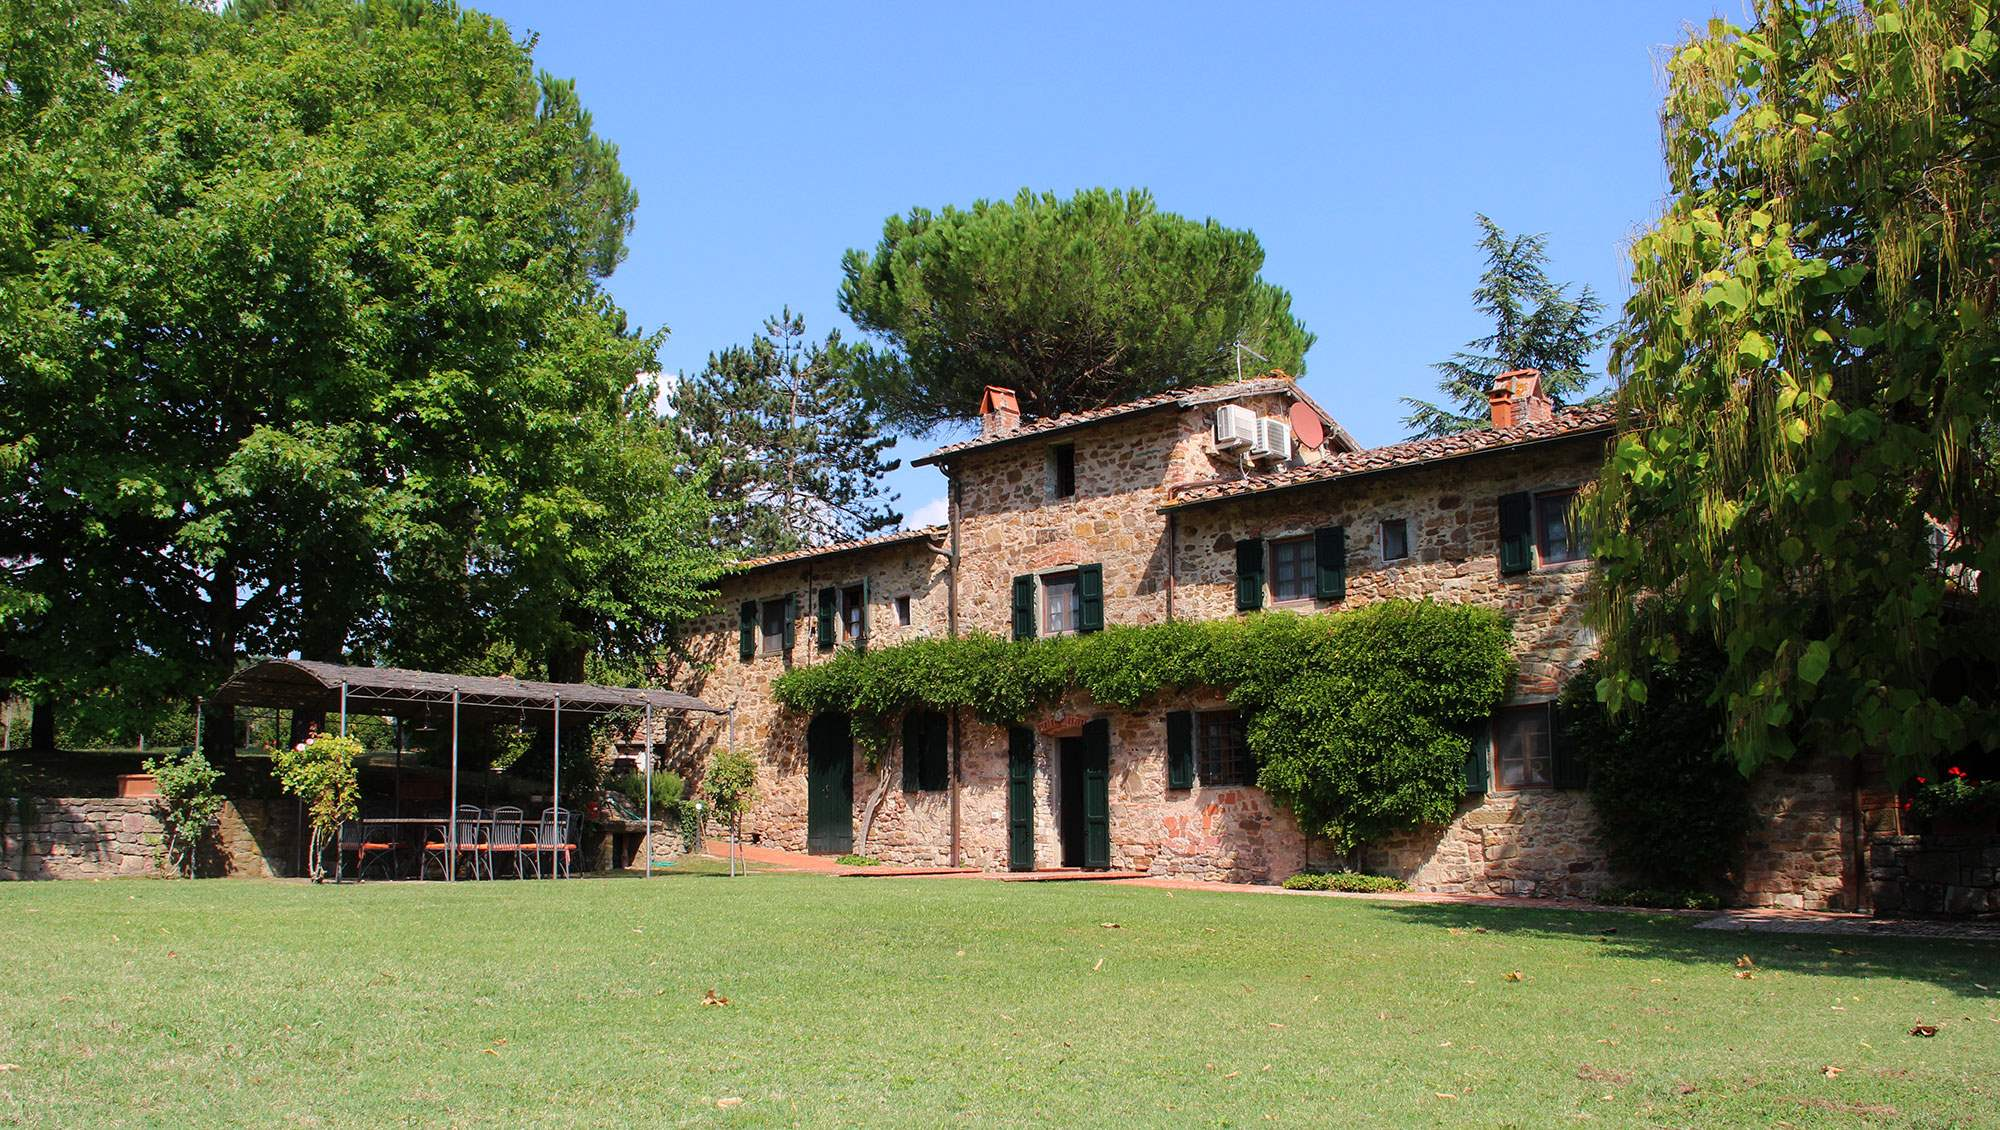 Villa Felicita, Main house and apartment, 10 persons rate, 5 bedroom villa in Chianti & Countryside, Tuscany Photo #2